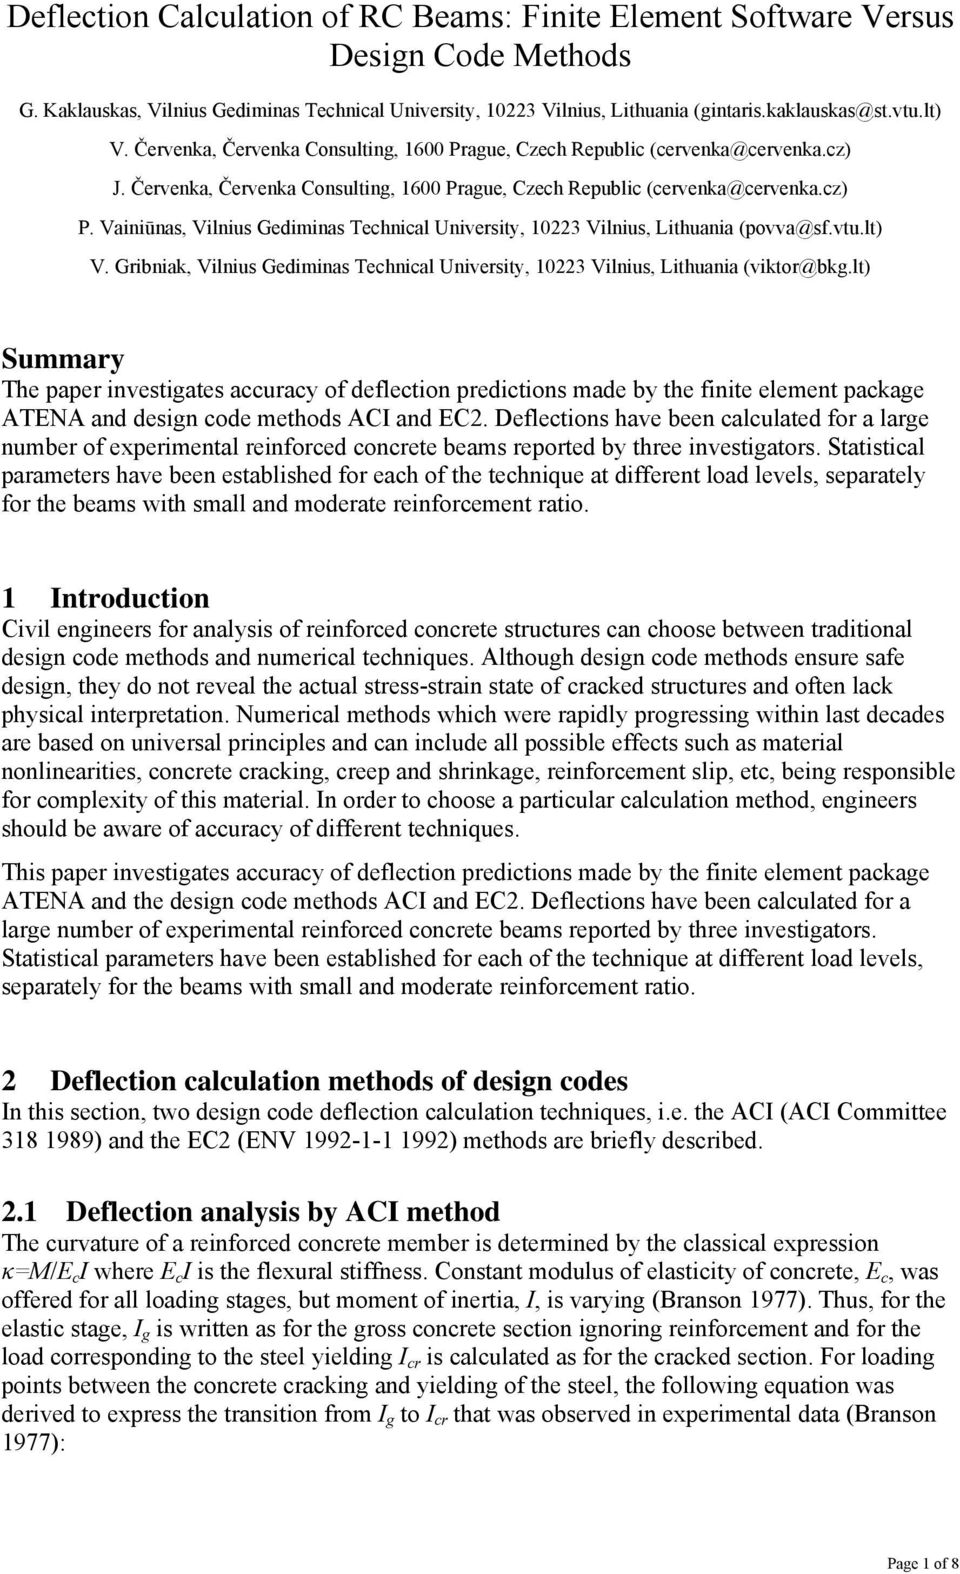 Deflection Calculation of RC Beams: Finite Element Software Versus